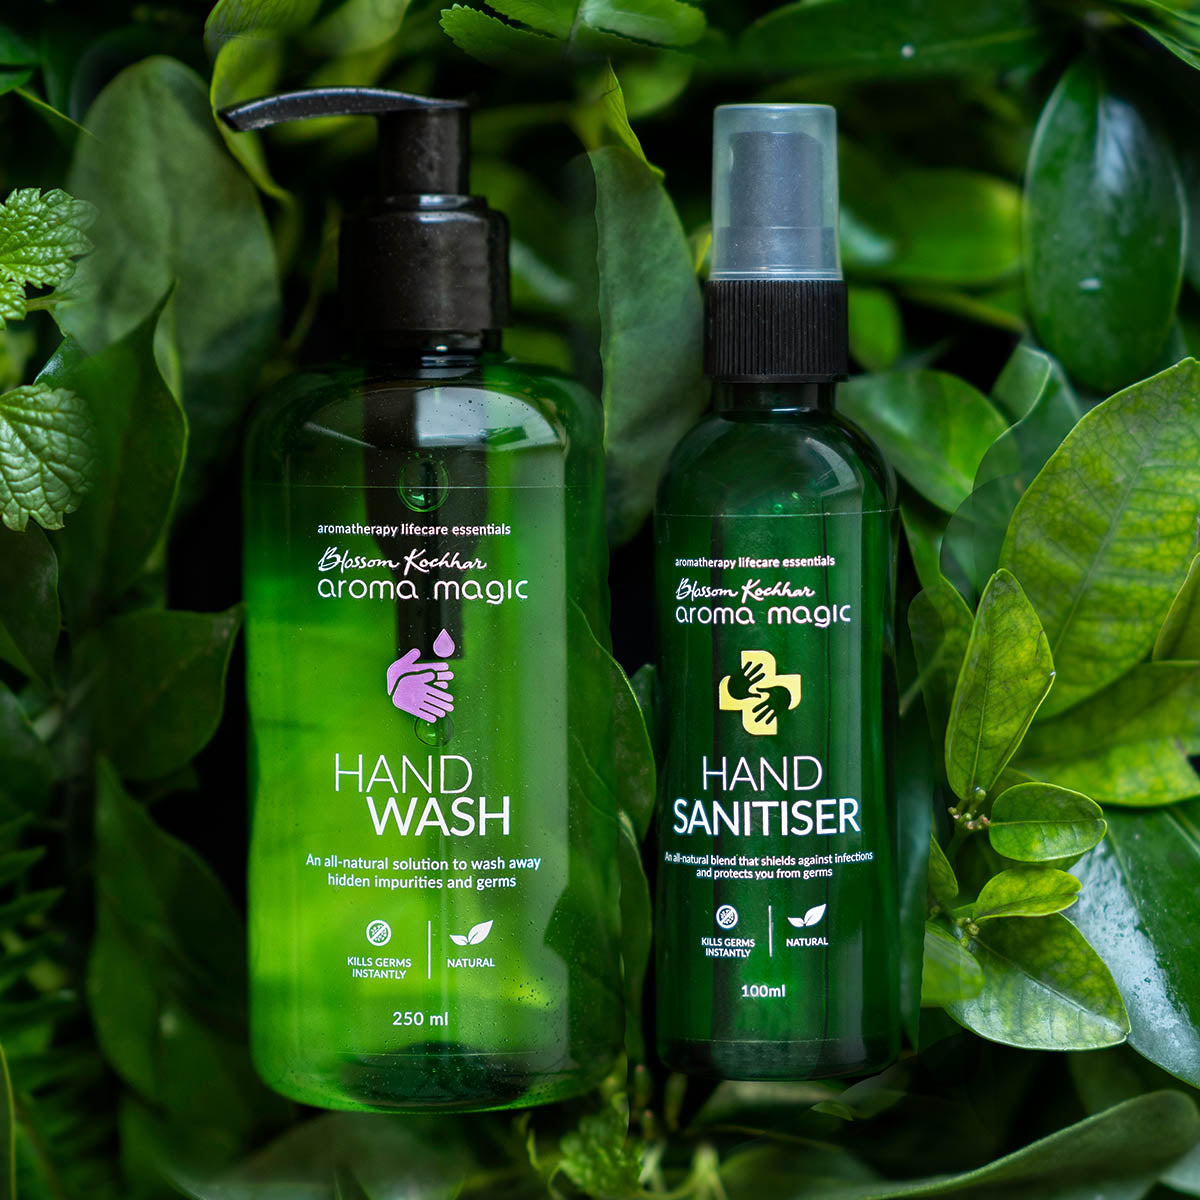 hand care | hand wash | hand sanitiser